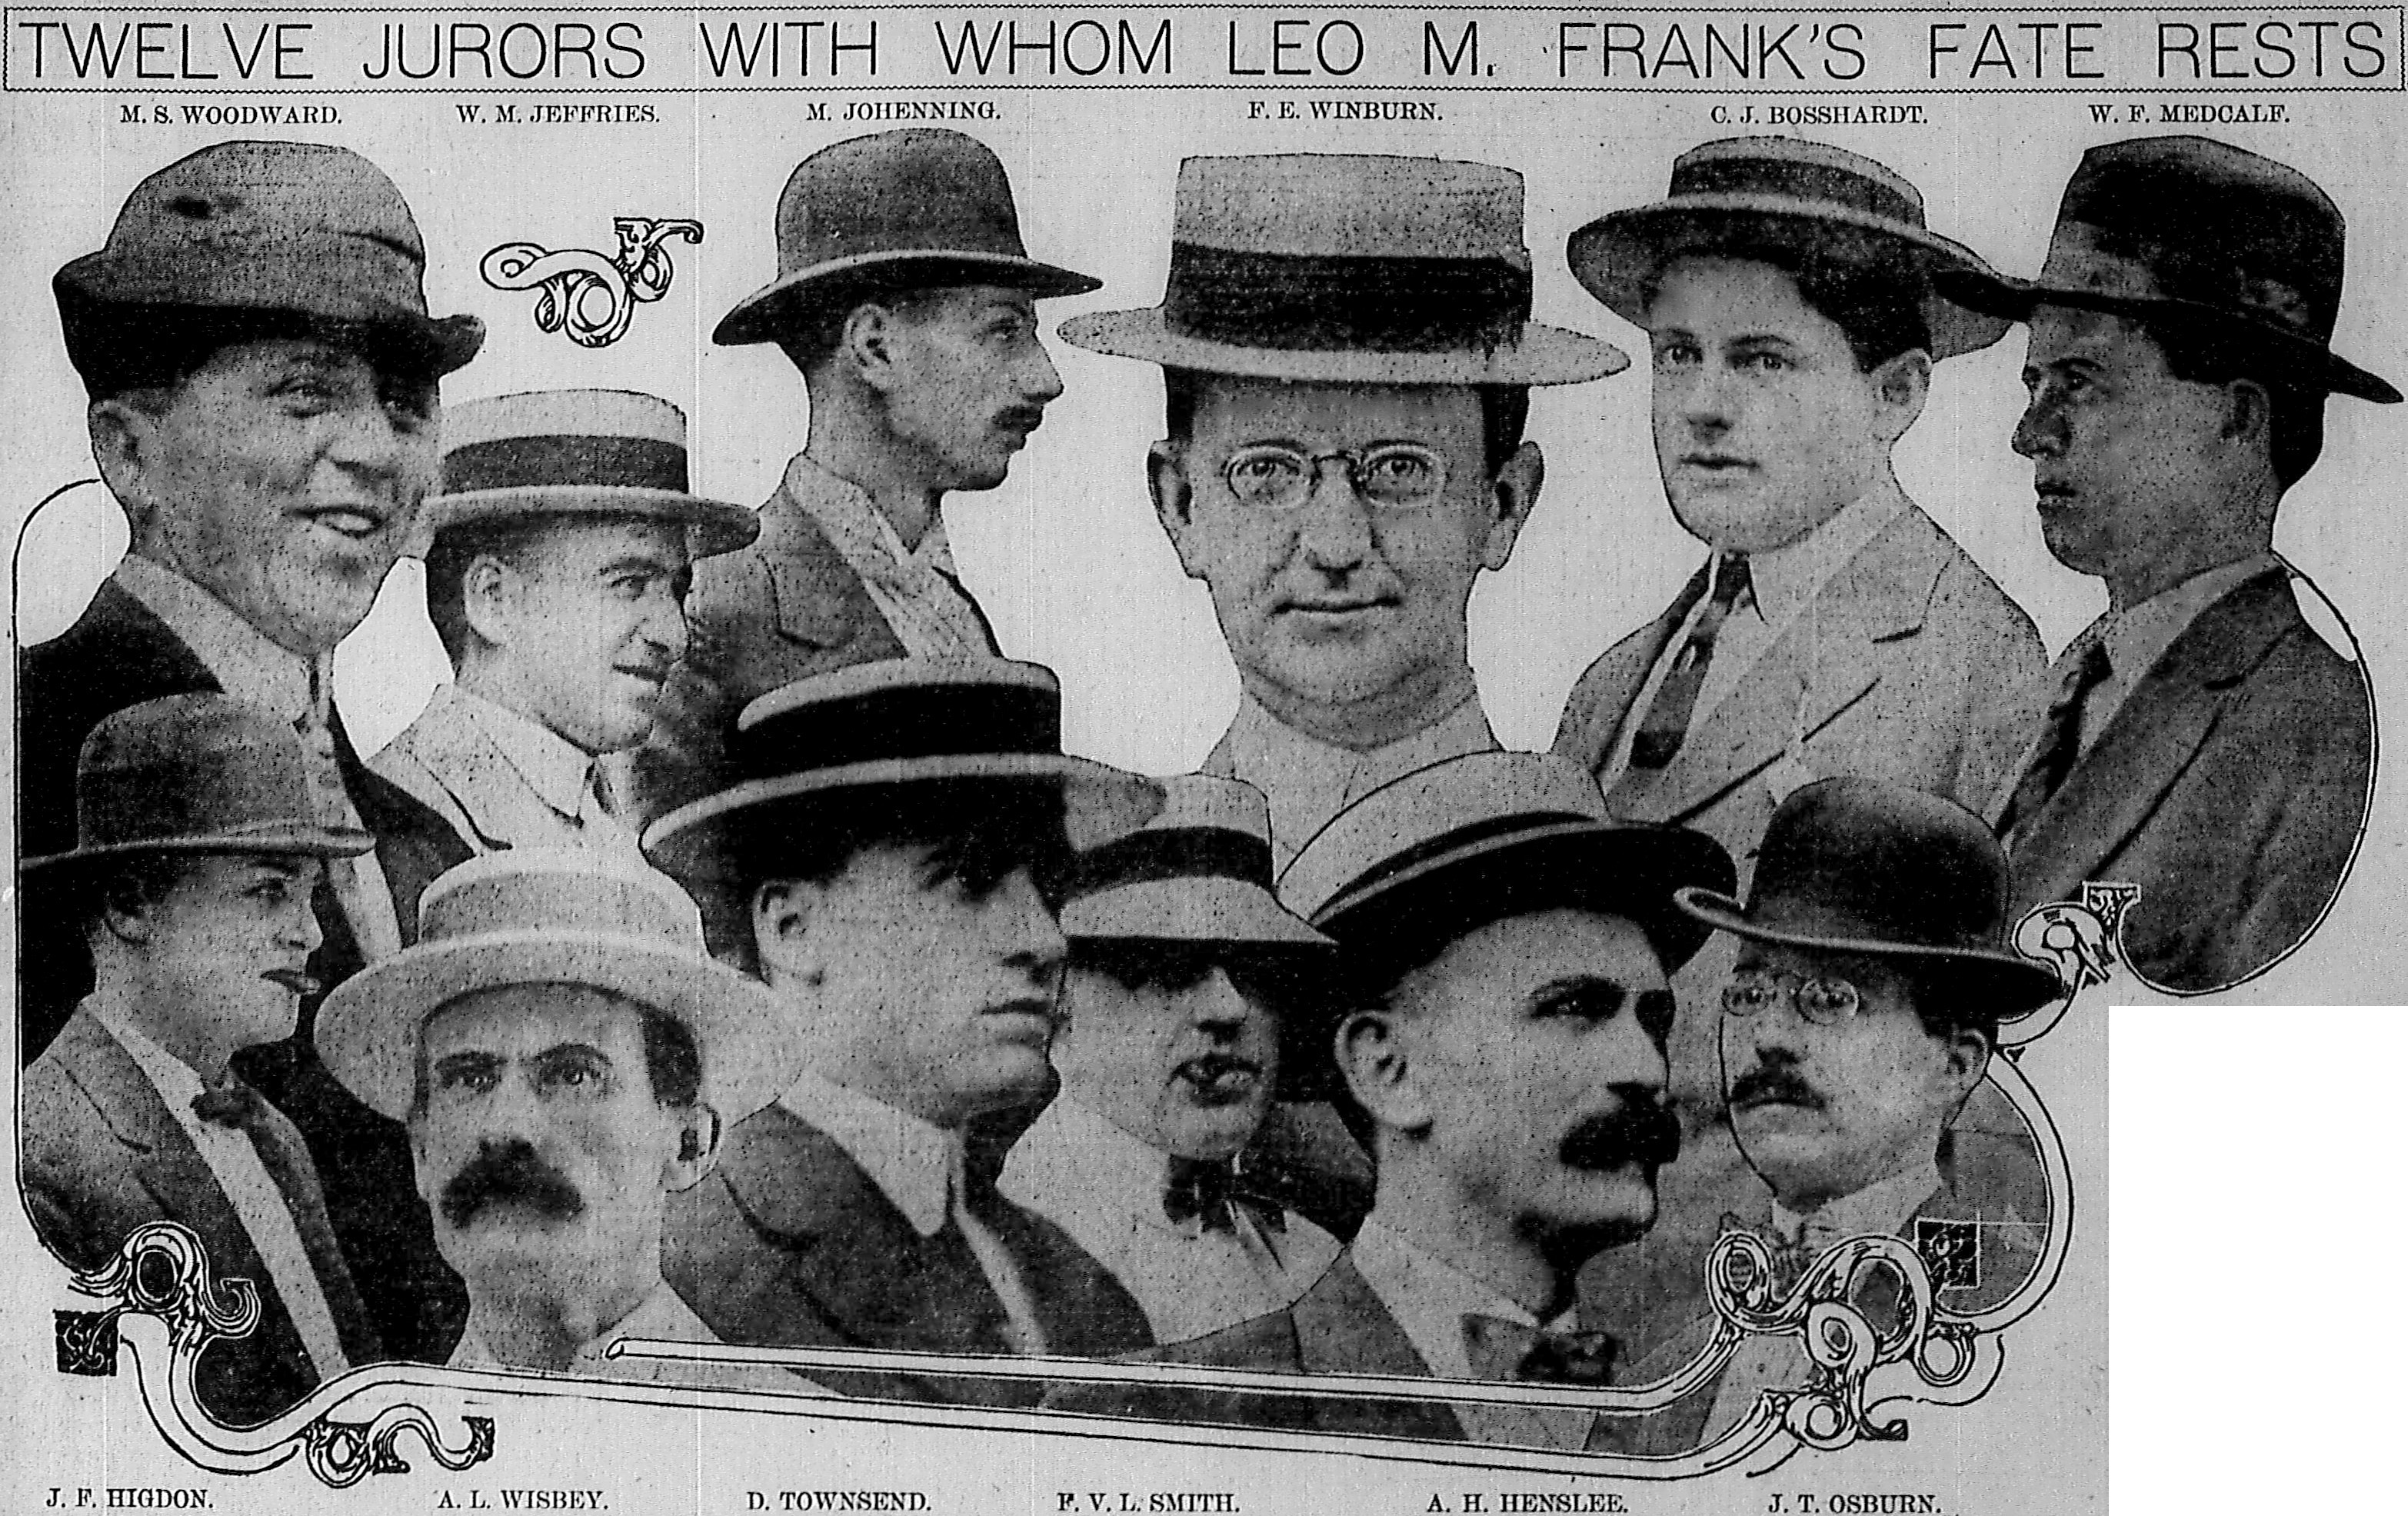 was leo frank guilty for the murder Leo frank's high-profile murder trial became a media circus and created deep and long-standing religious and ethnic fractures in atlanta for many in the jewish community, the subsequent guilty verdict was seen as symbolic of the depth of anti-semitism in the united states, on a par with the infamous dreyfus affair in france.